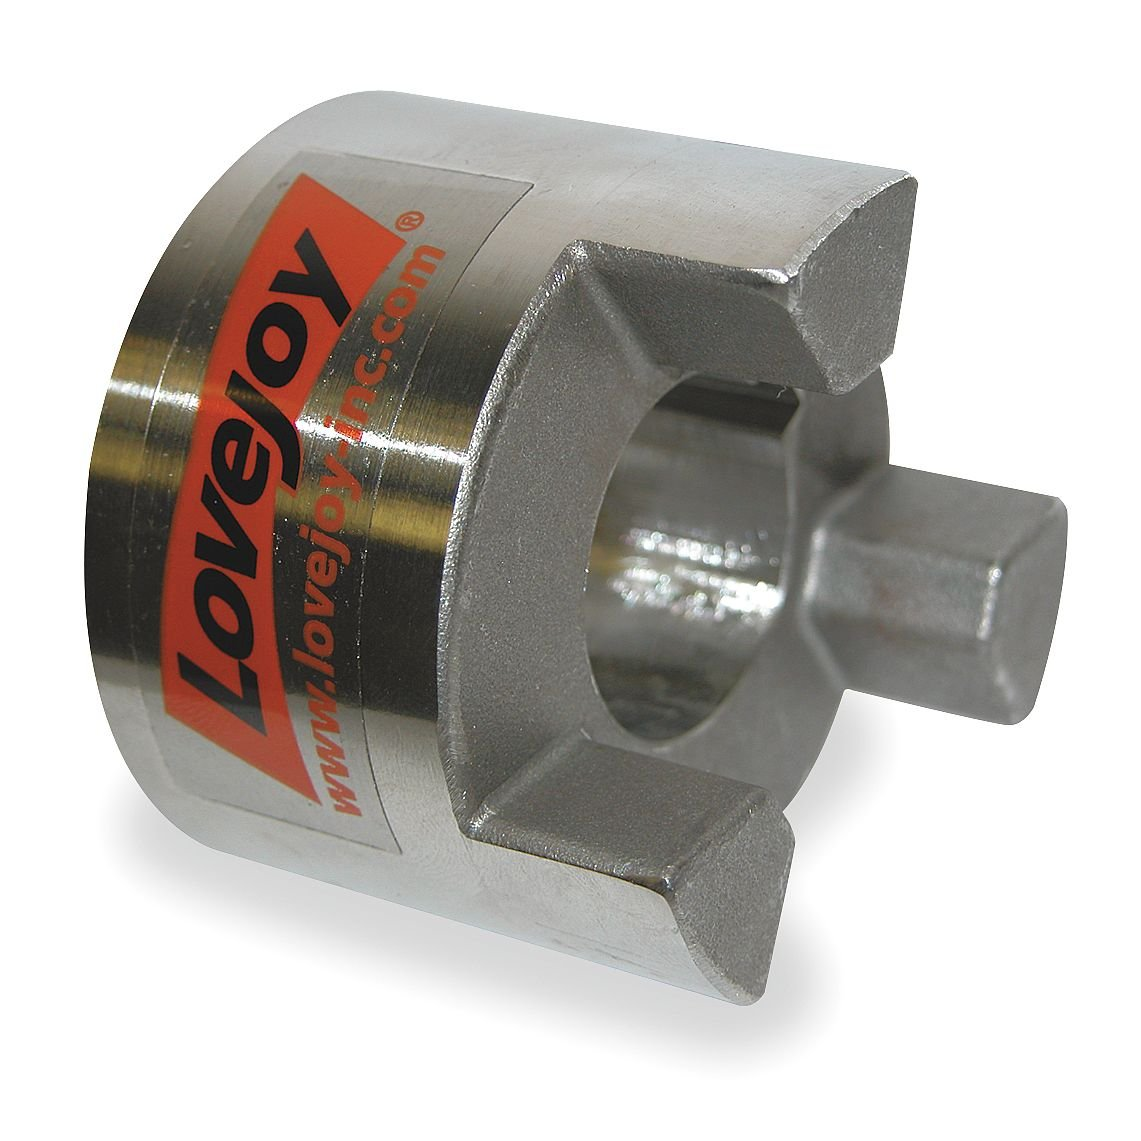 1 Bore Lovejoy 68514470019 Stainless Steel Size SS100 Jaw Coupling Hub 0.25 x 0.125 Keyway 1 Bore 2.54 OD 1.38 Length Through Bore 0.25 x 0.125 Keyway 2.54 OD 1.38 Length Through Bore